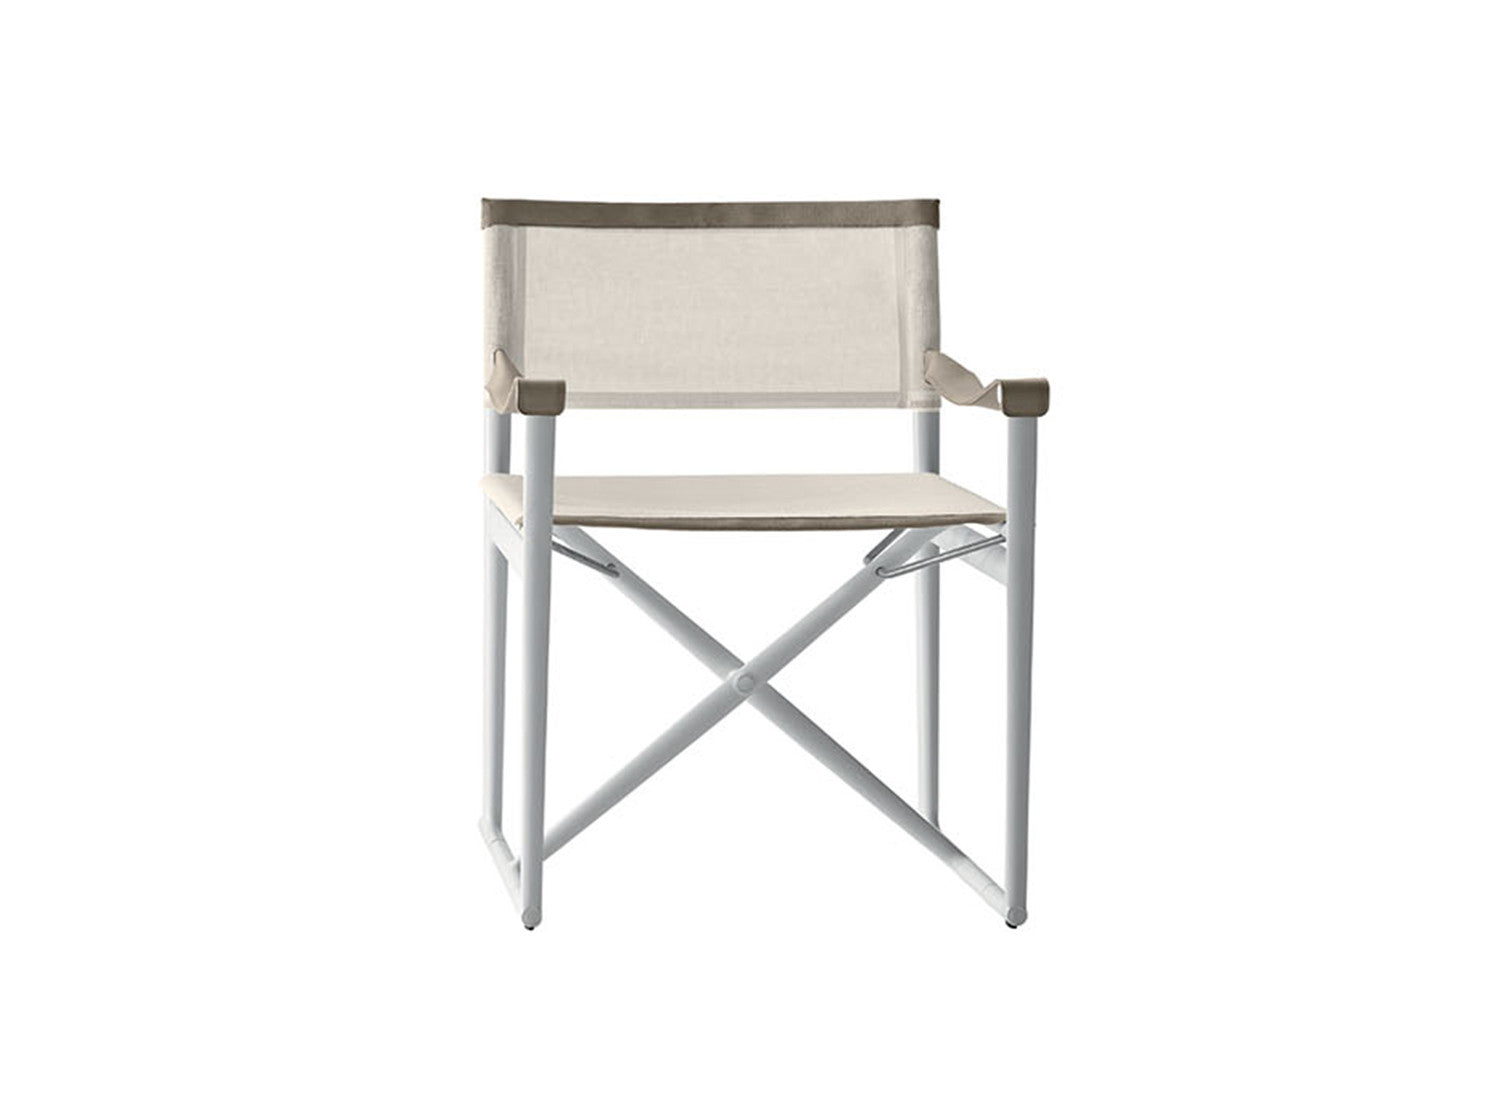 Mirto Outdoor Folding Chair